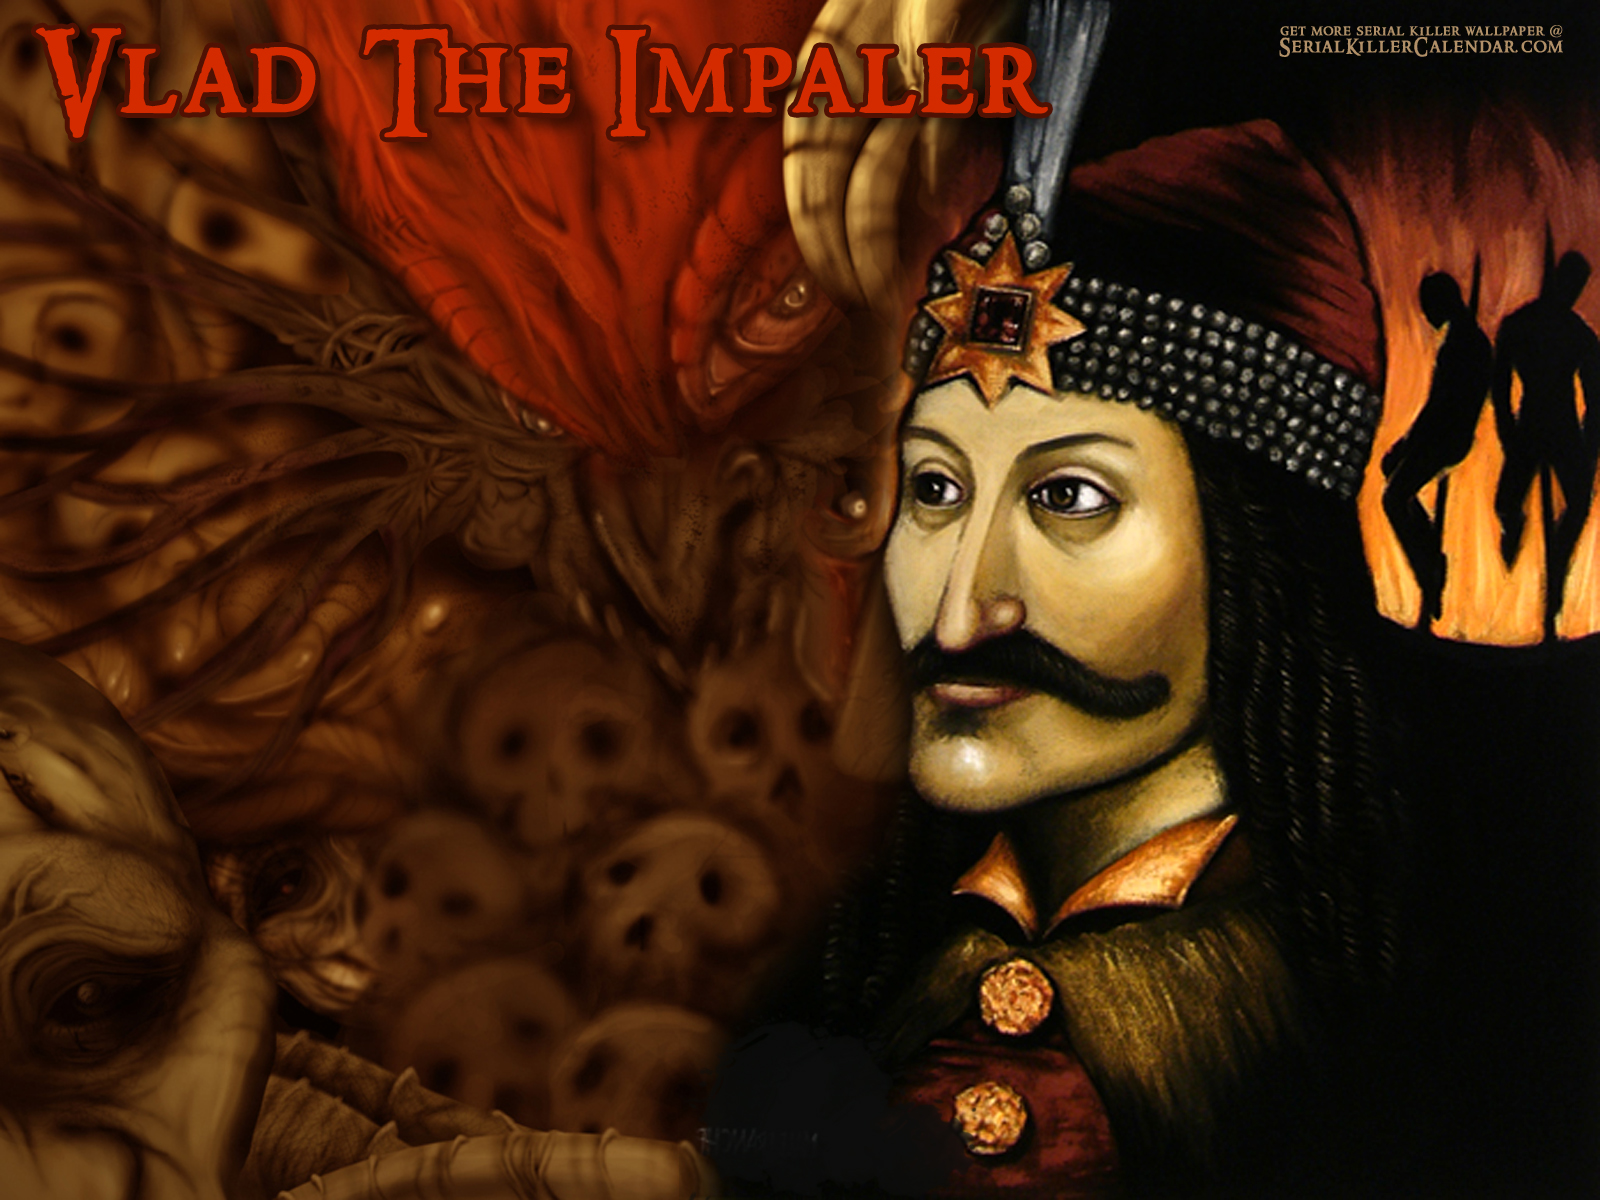 https://i0.wp.com/images.fanpop.com/images/image_uploads/Vlad-the-Impaler-serial-killers-586891_1600_1200.jpg